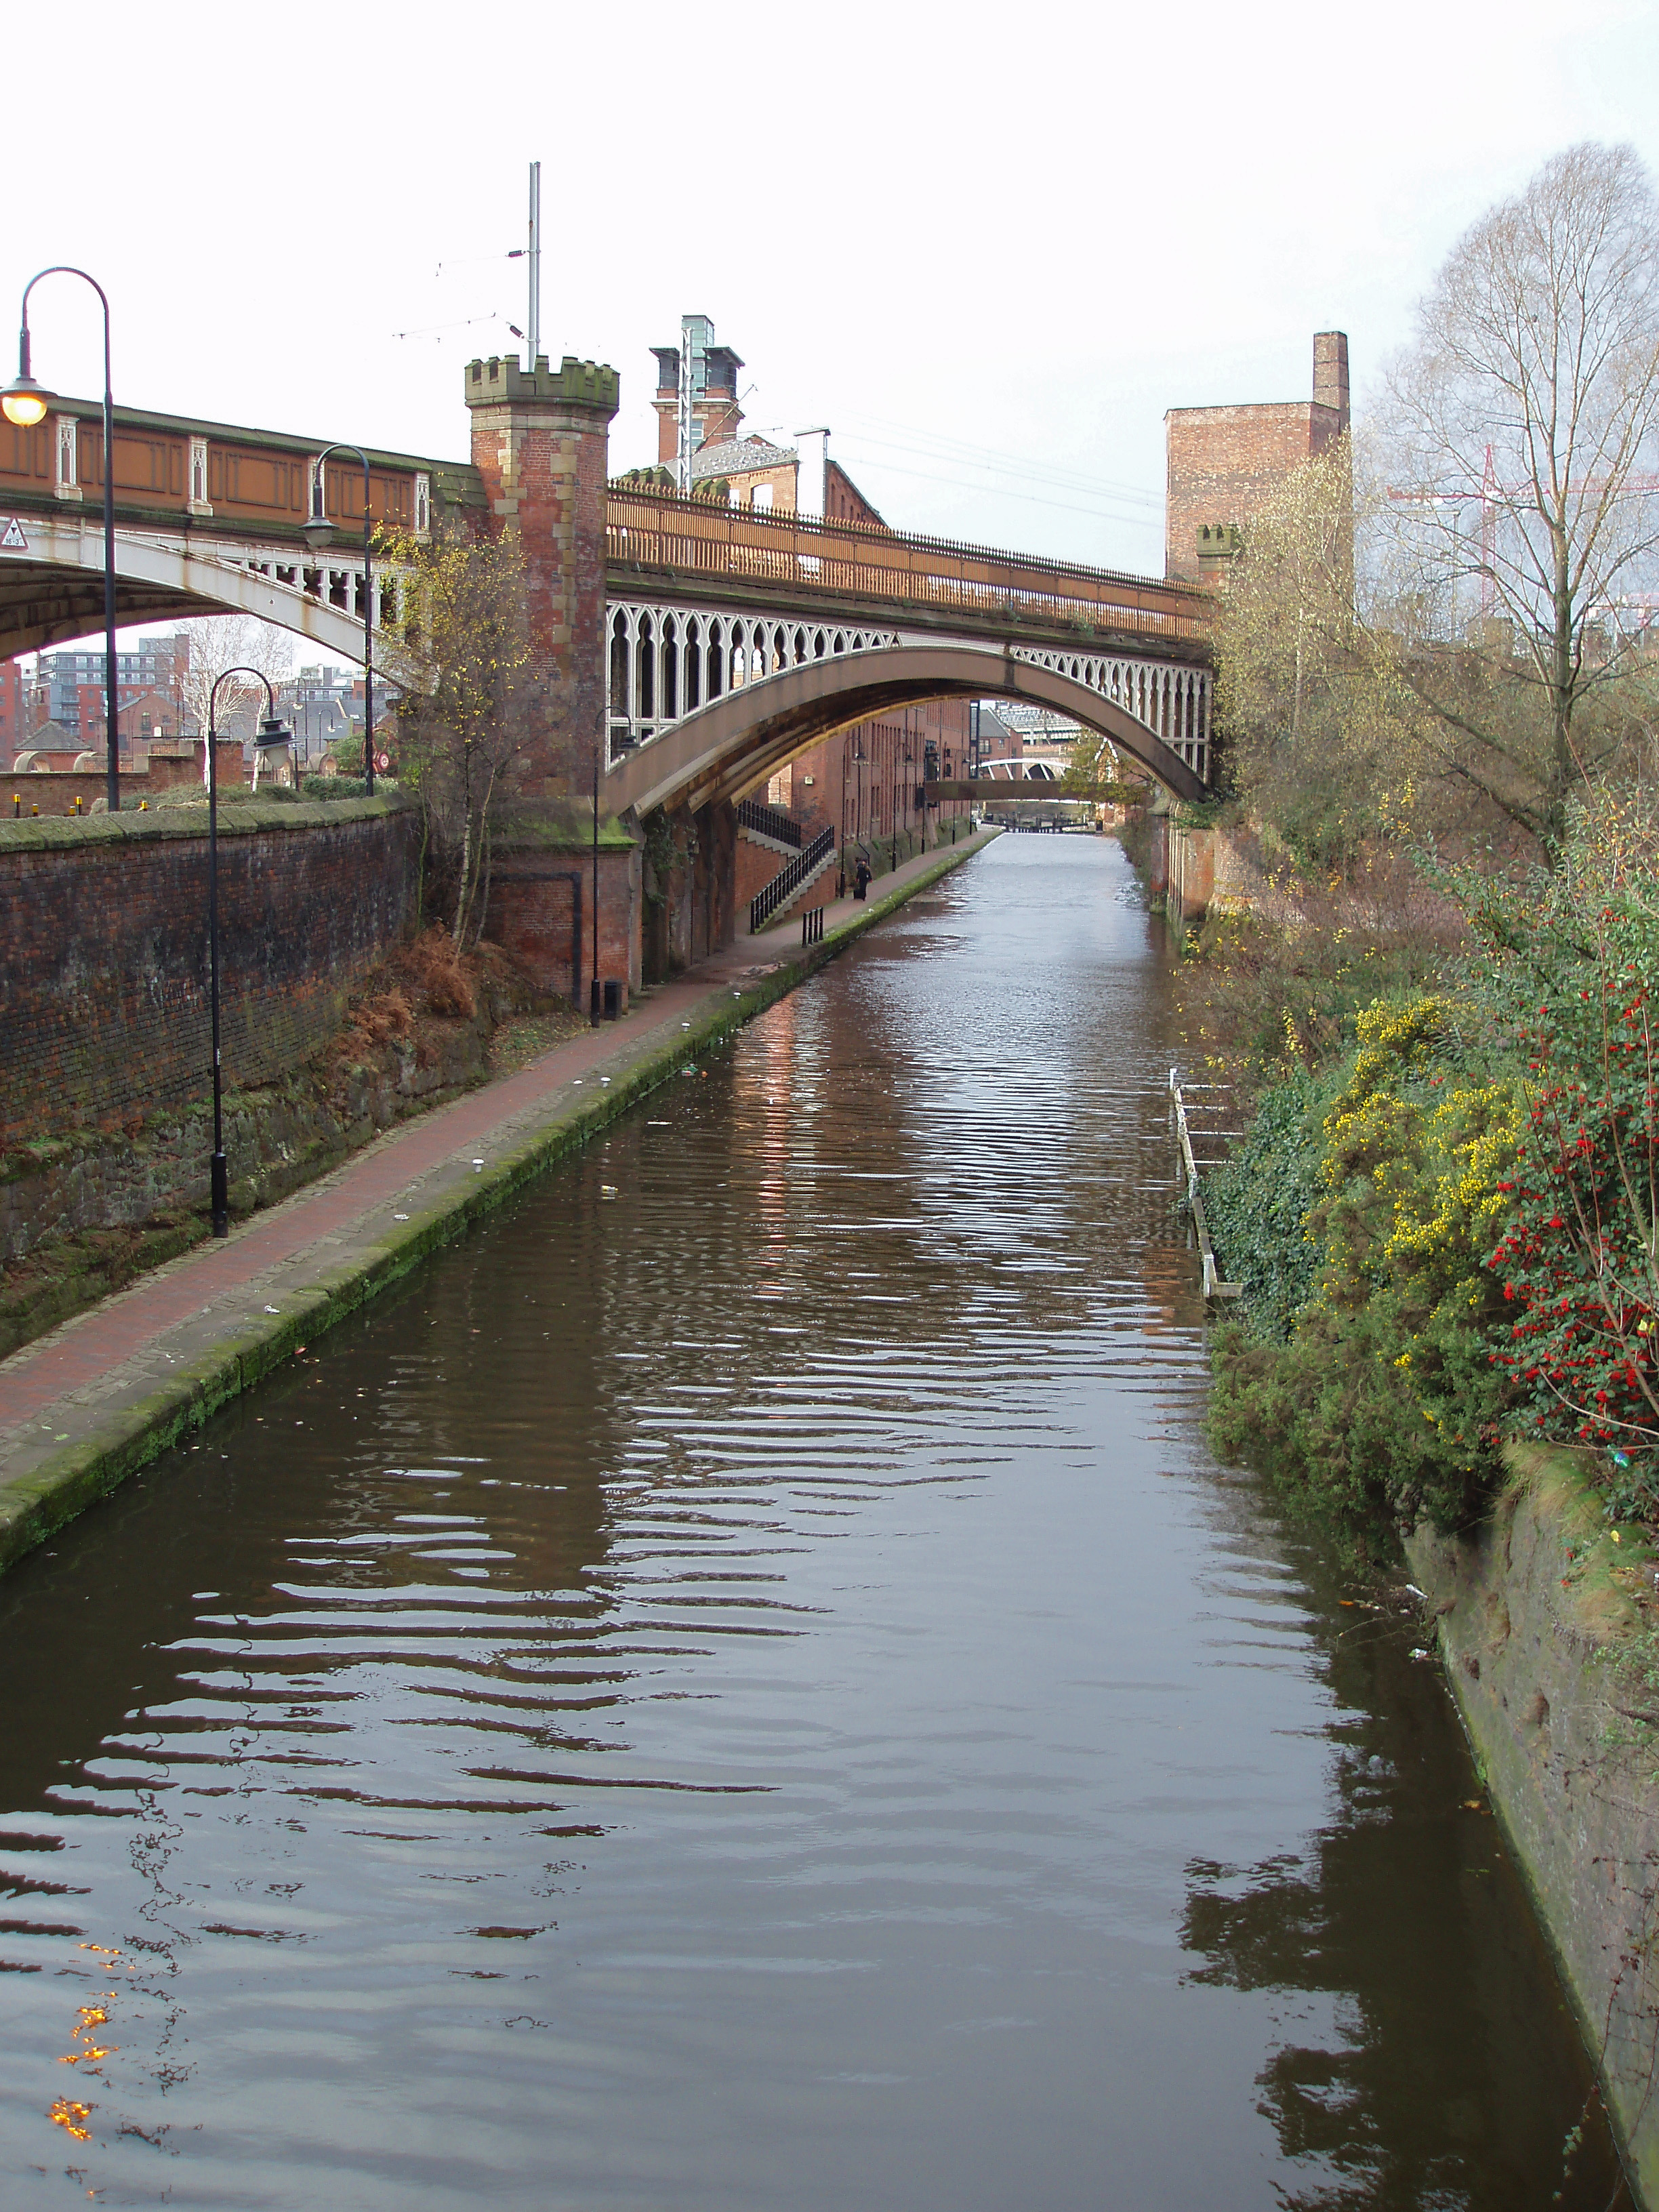 mancunian industrial revolution canals